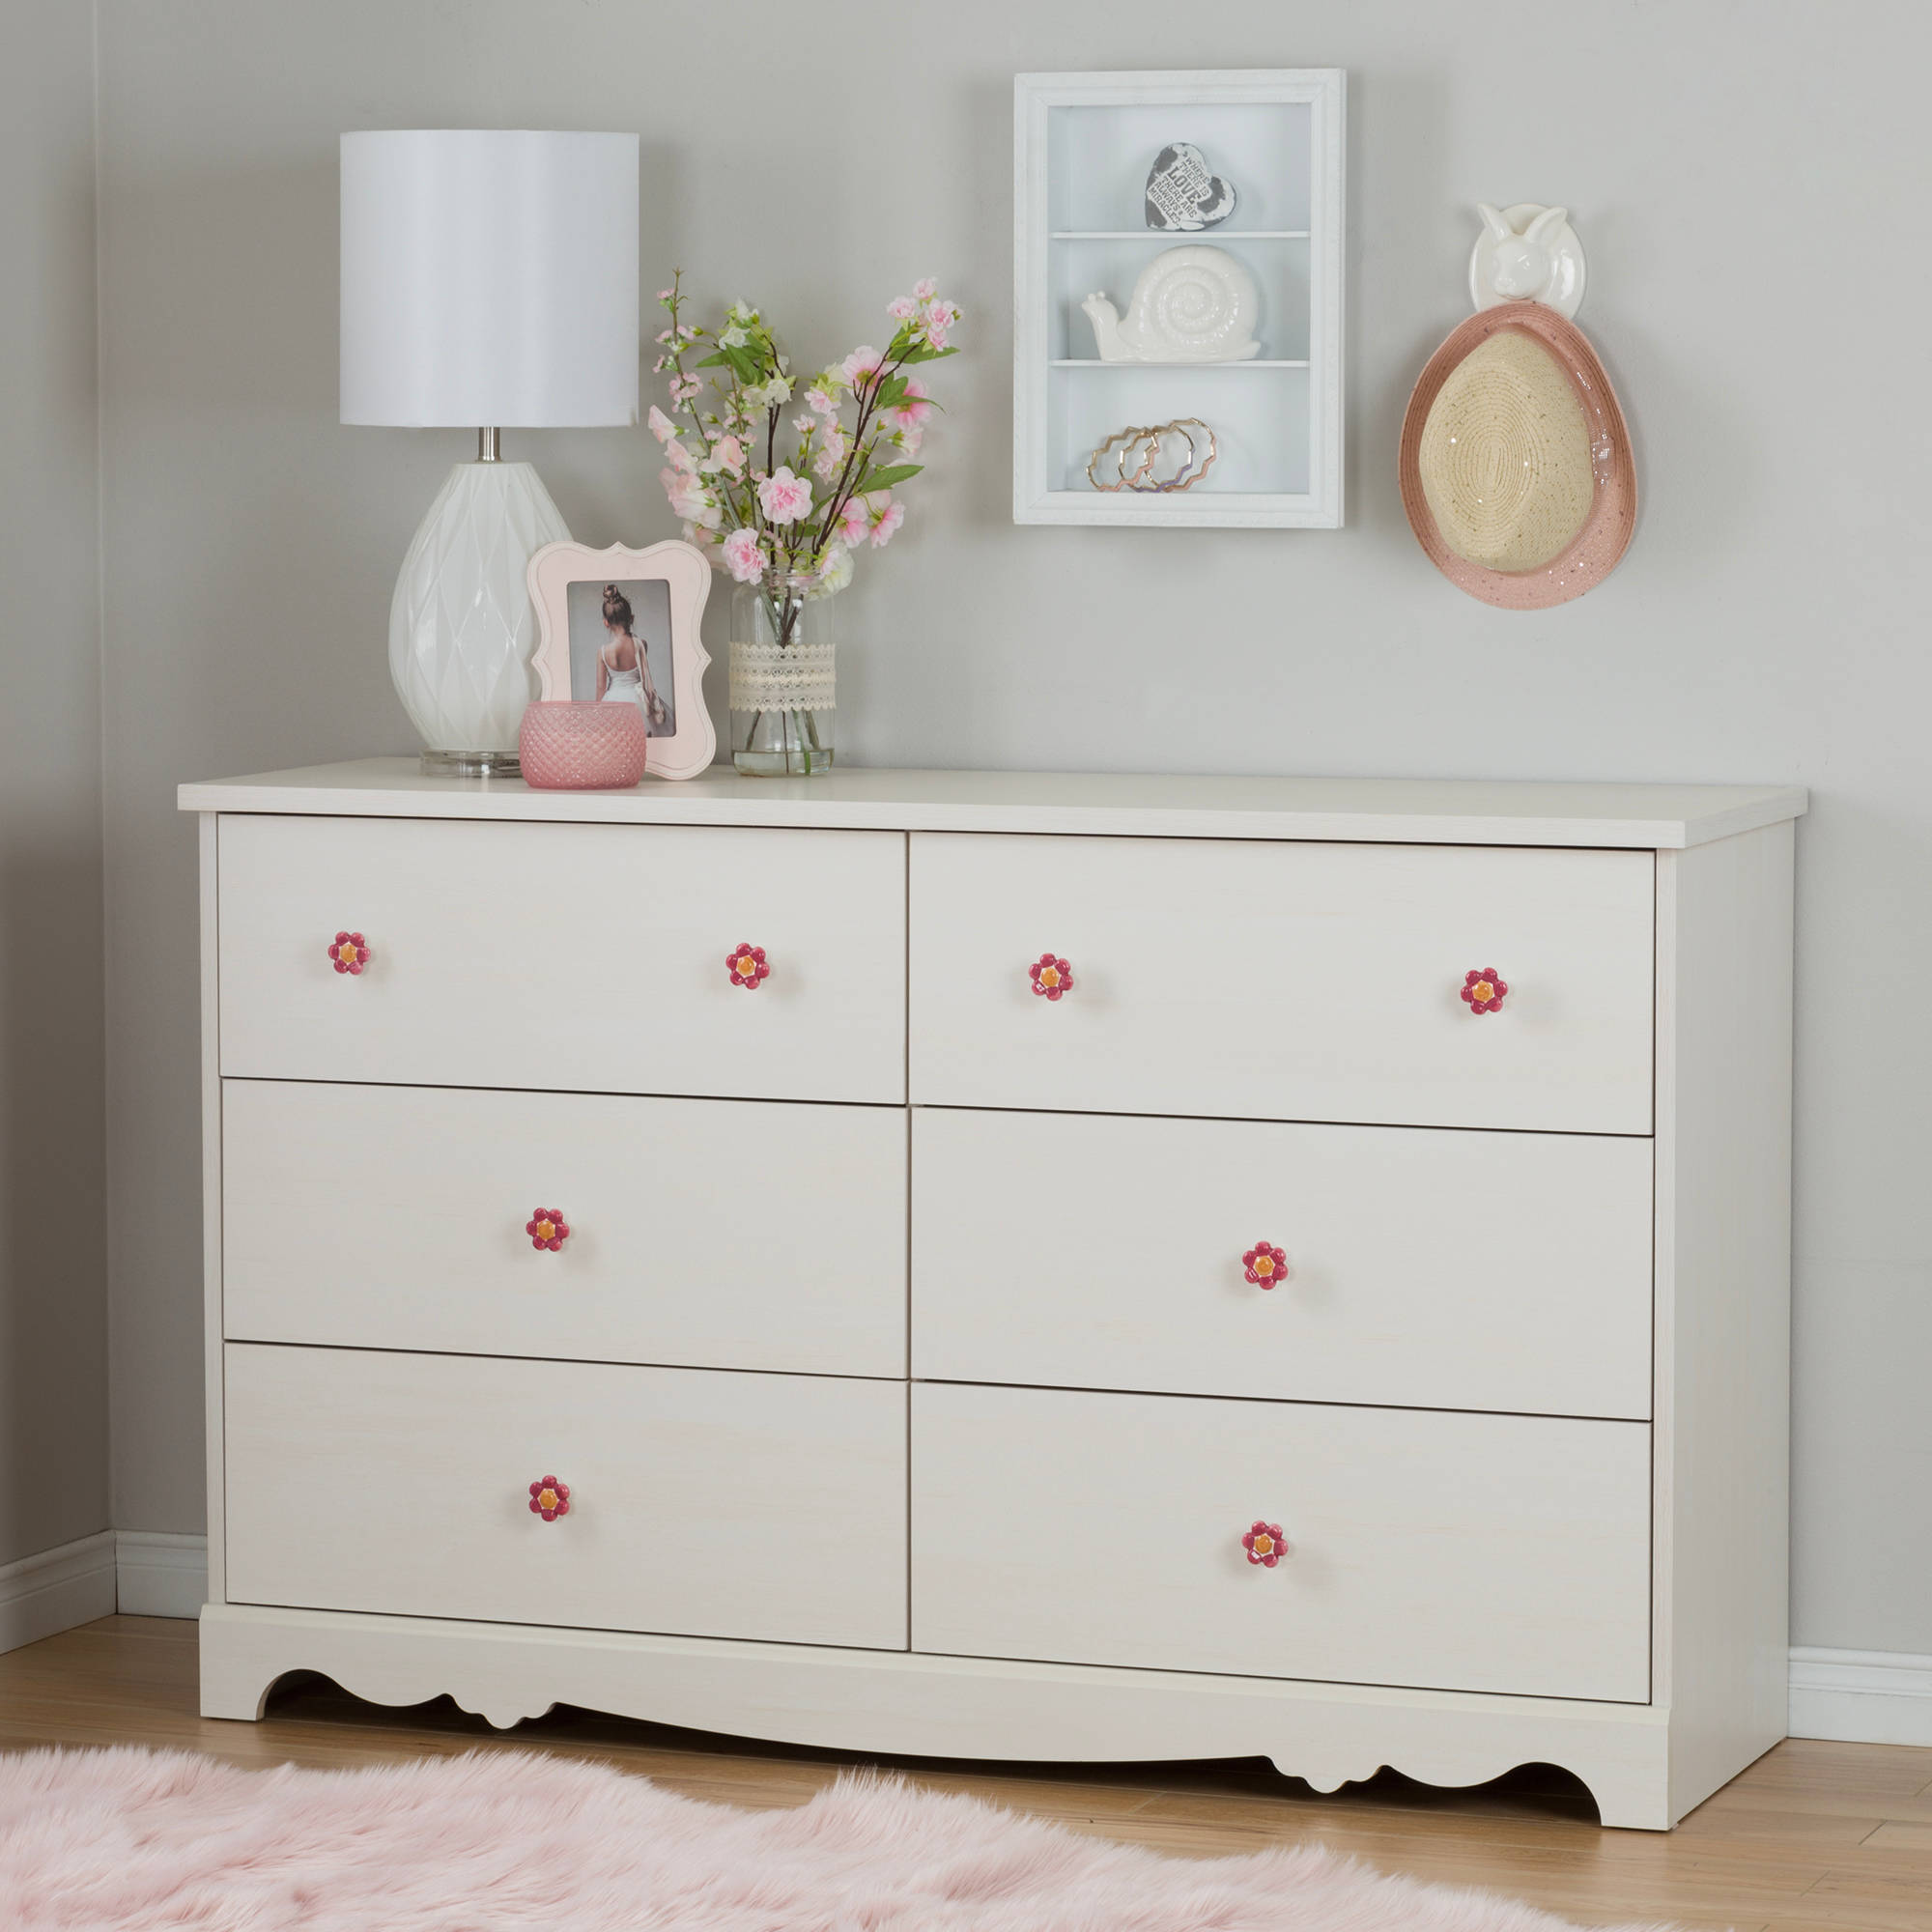 South Shore Lily Rose 6-Drawer Double Dresser, White Wash